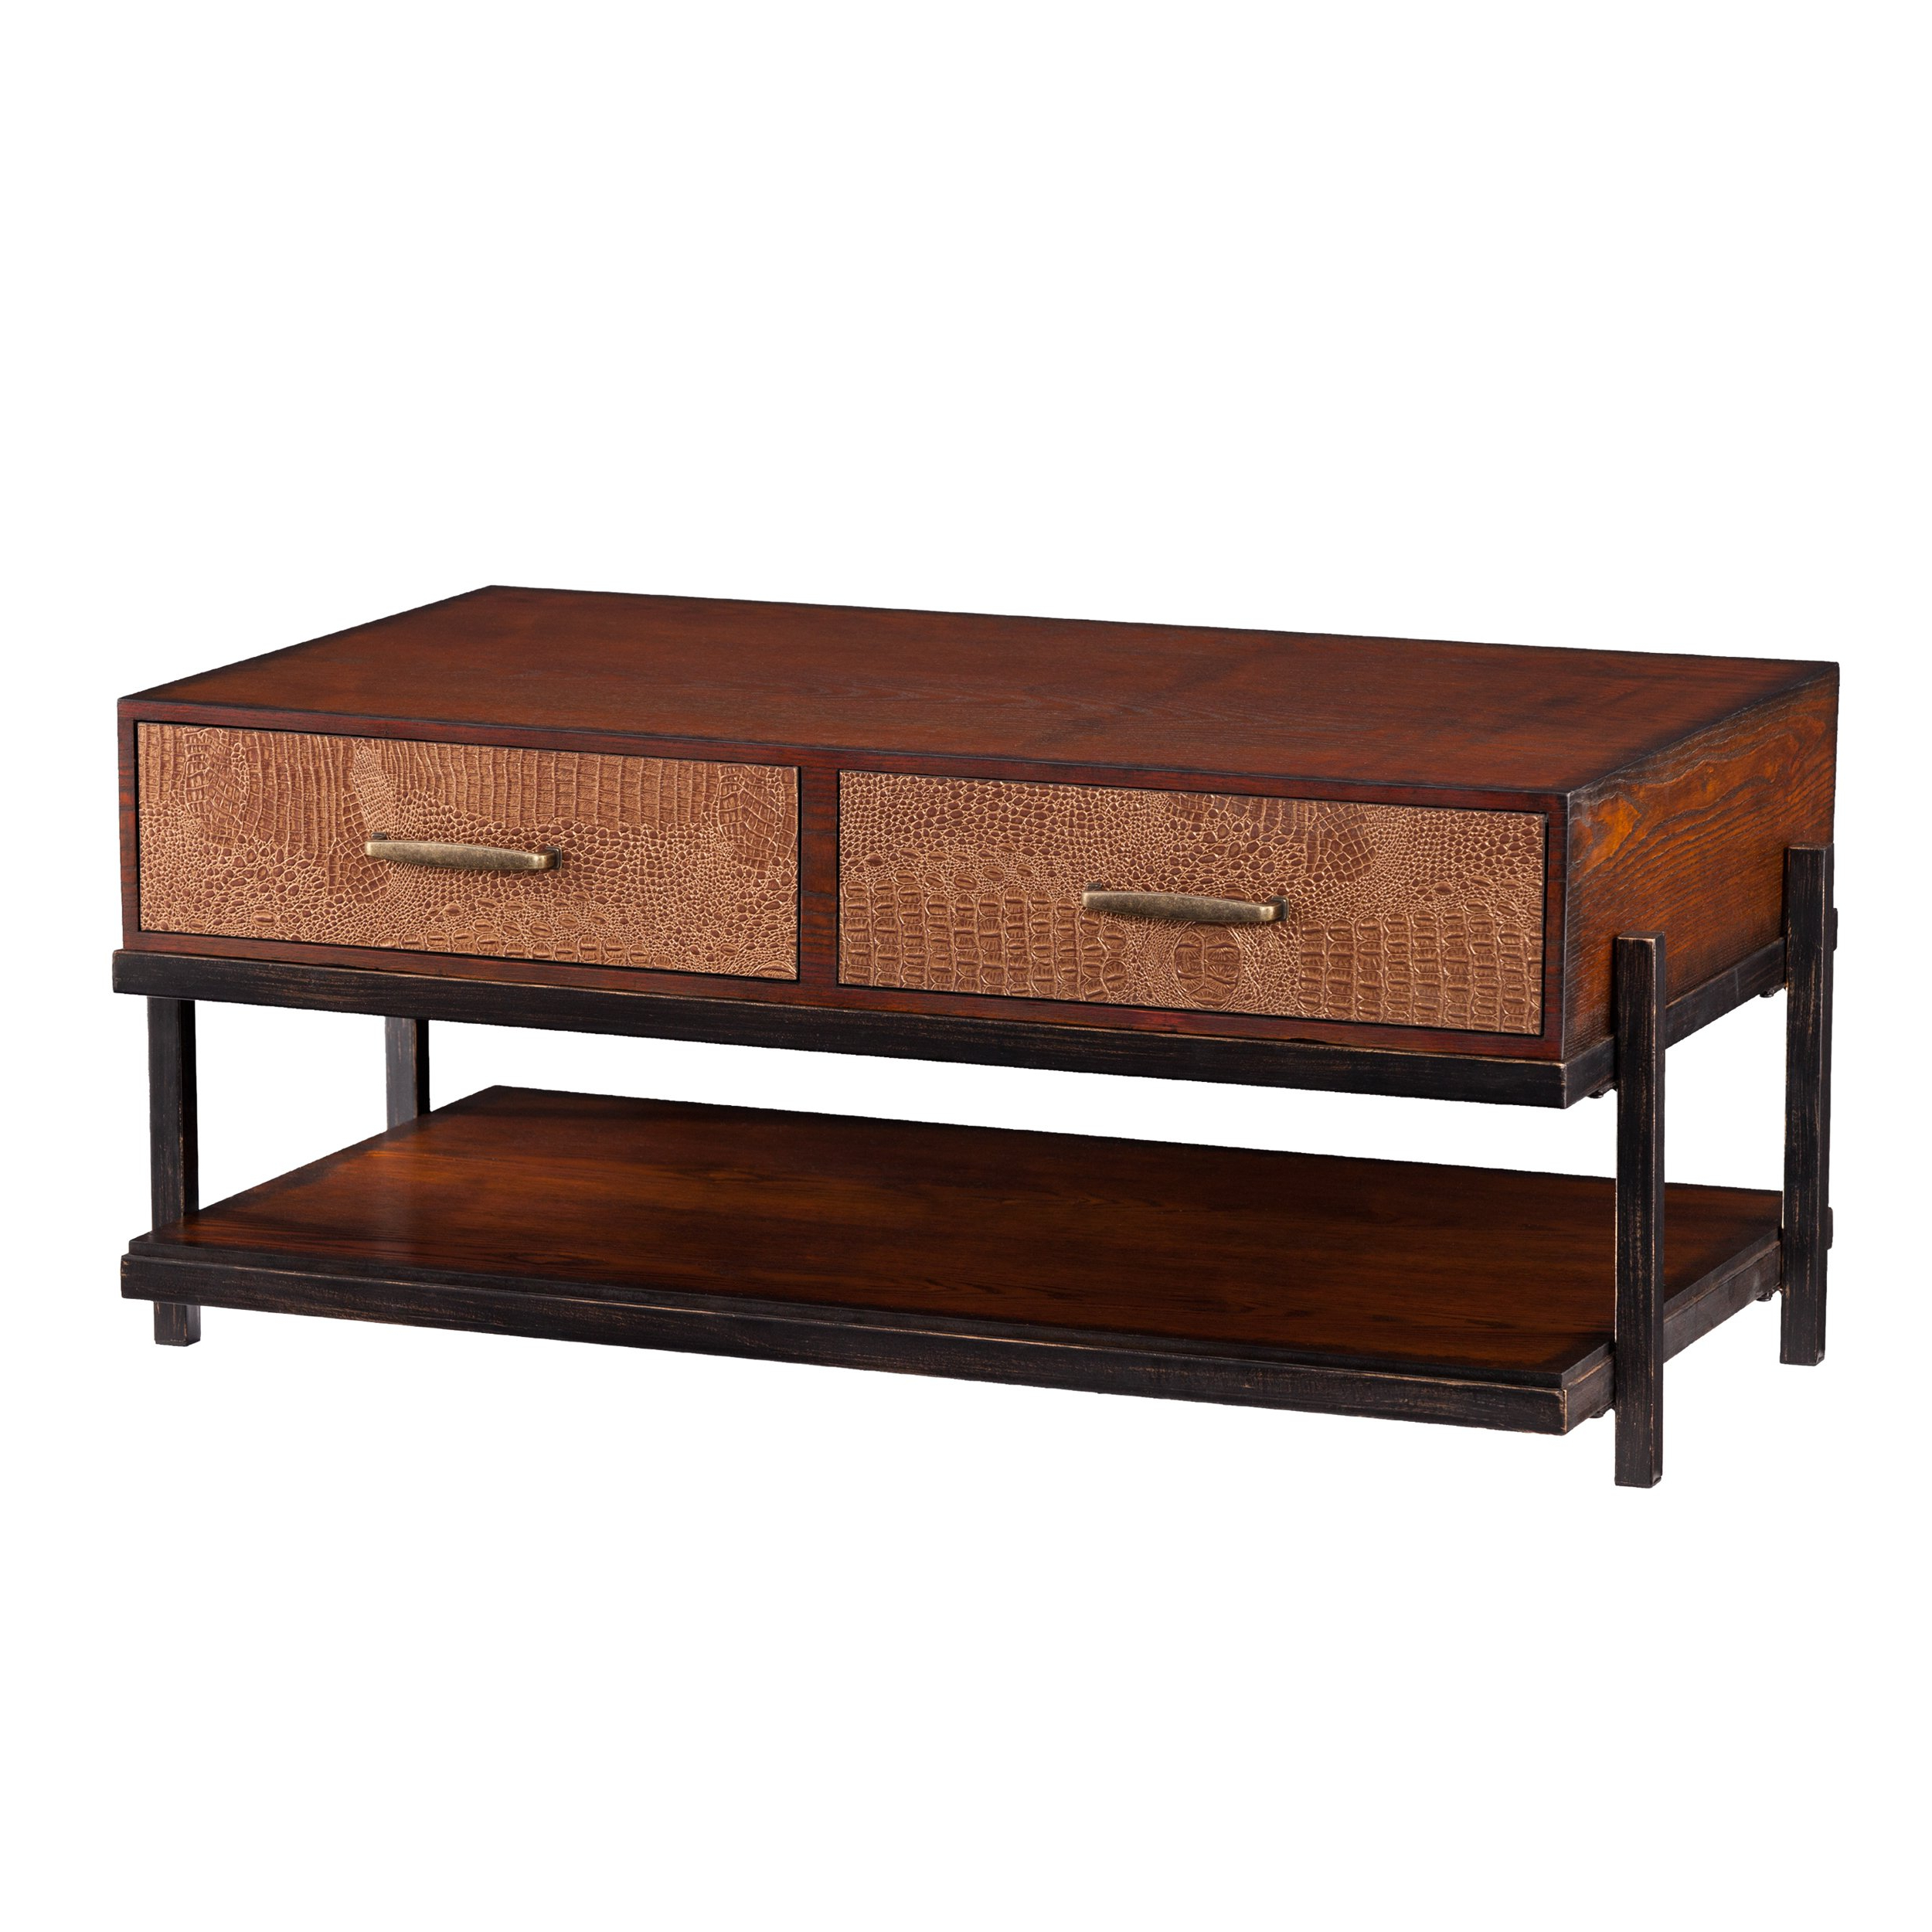 Shop Harper Blvd Palmer Cocktail/ Coffee Table – Free Shipping Today For Well Liked Palmer Storage Cocktail Tables (View 9 of 20)